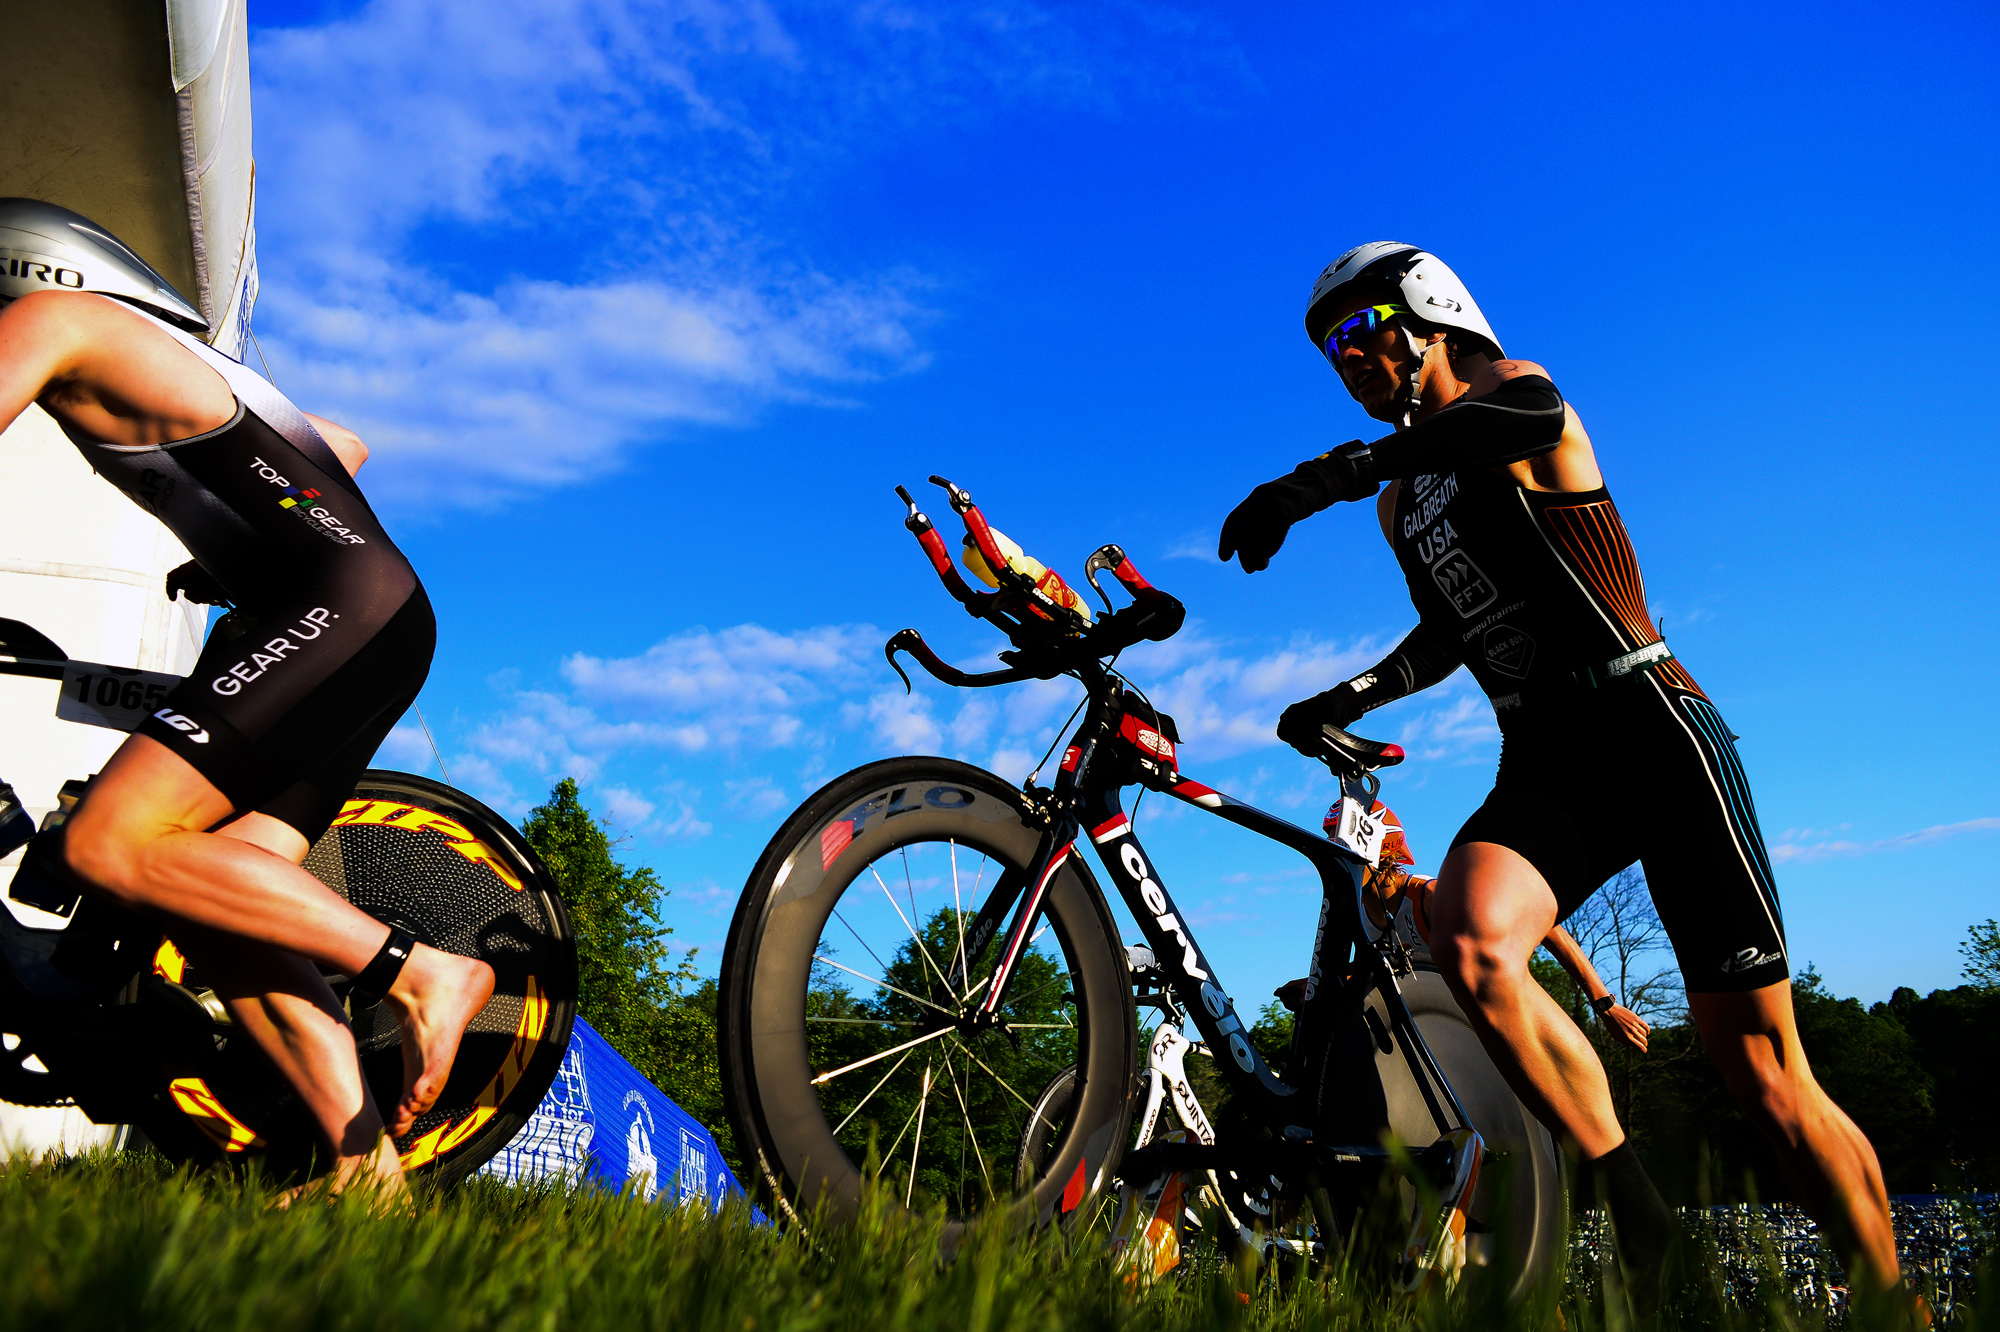 Justin Galbreath, right, of Coatesville, Pennsylvania races his bike up a hillduringthe 31st annual Columbia Triathlon at Centennial Park in Ellicott City, Maryland onMay 18, 2014.